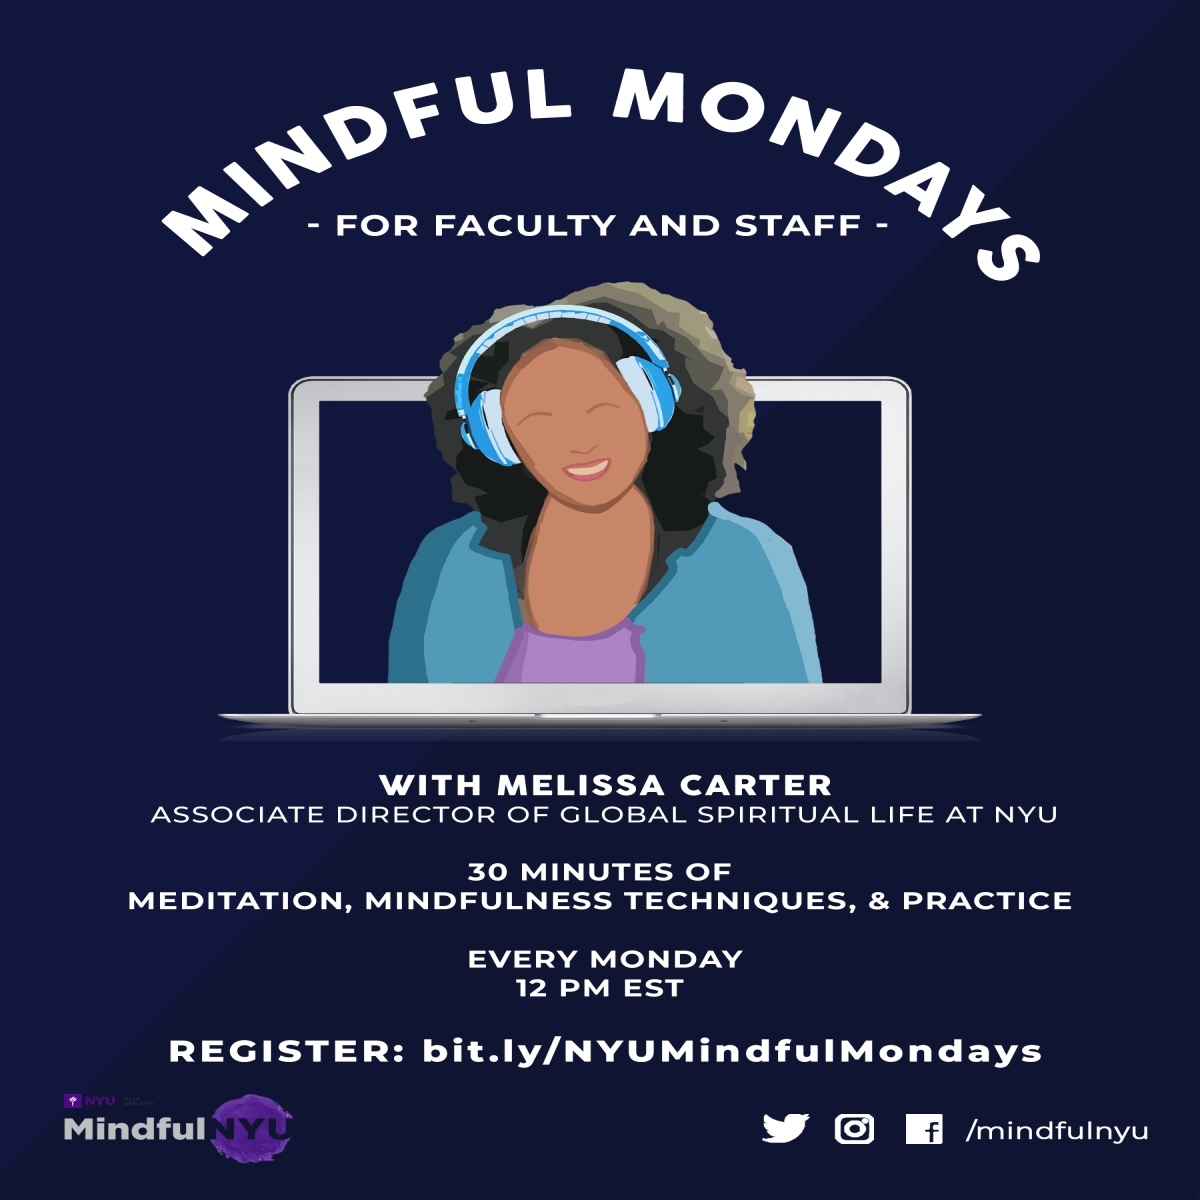 Mindful Mondays for Faculty and Staff